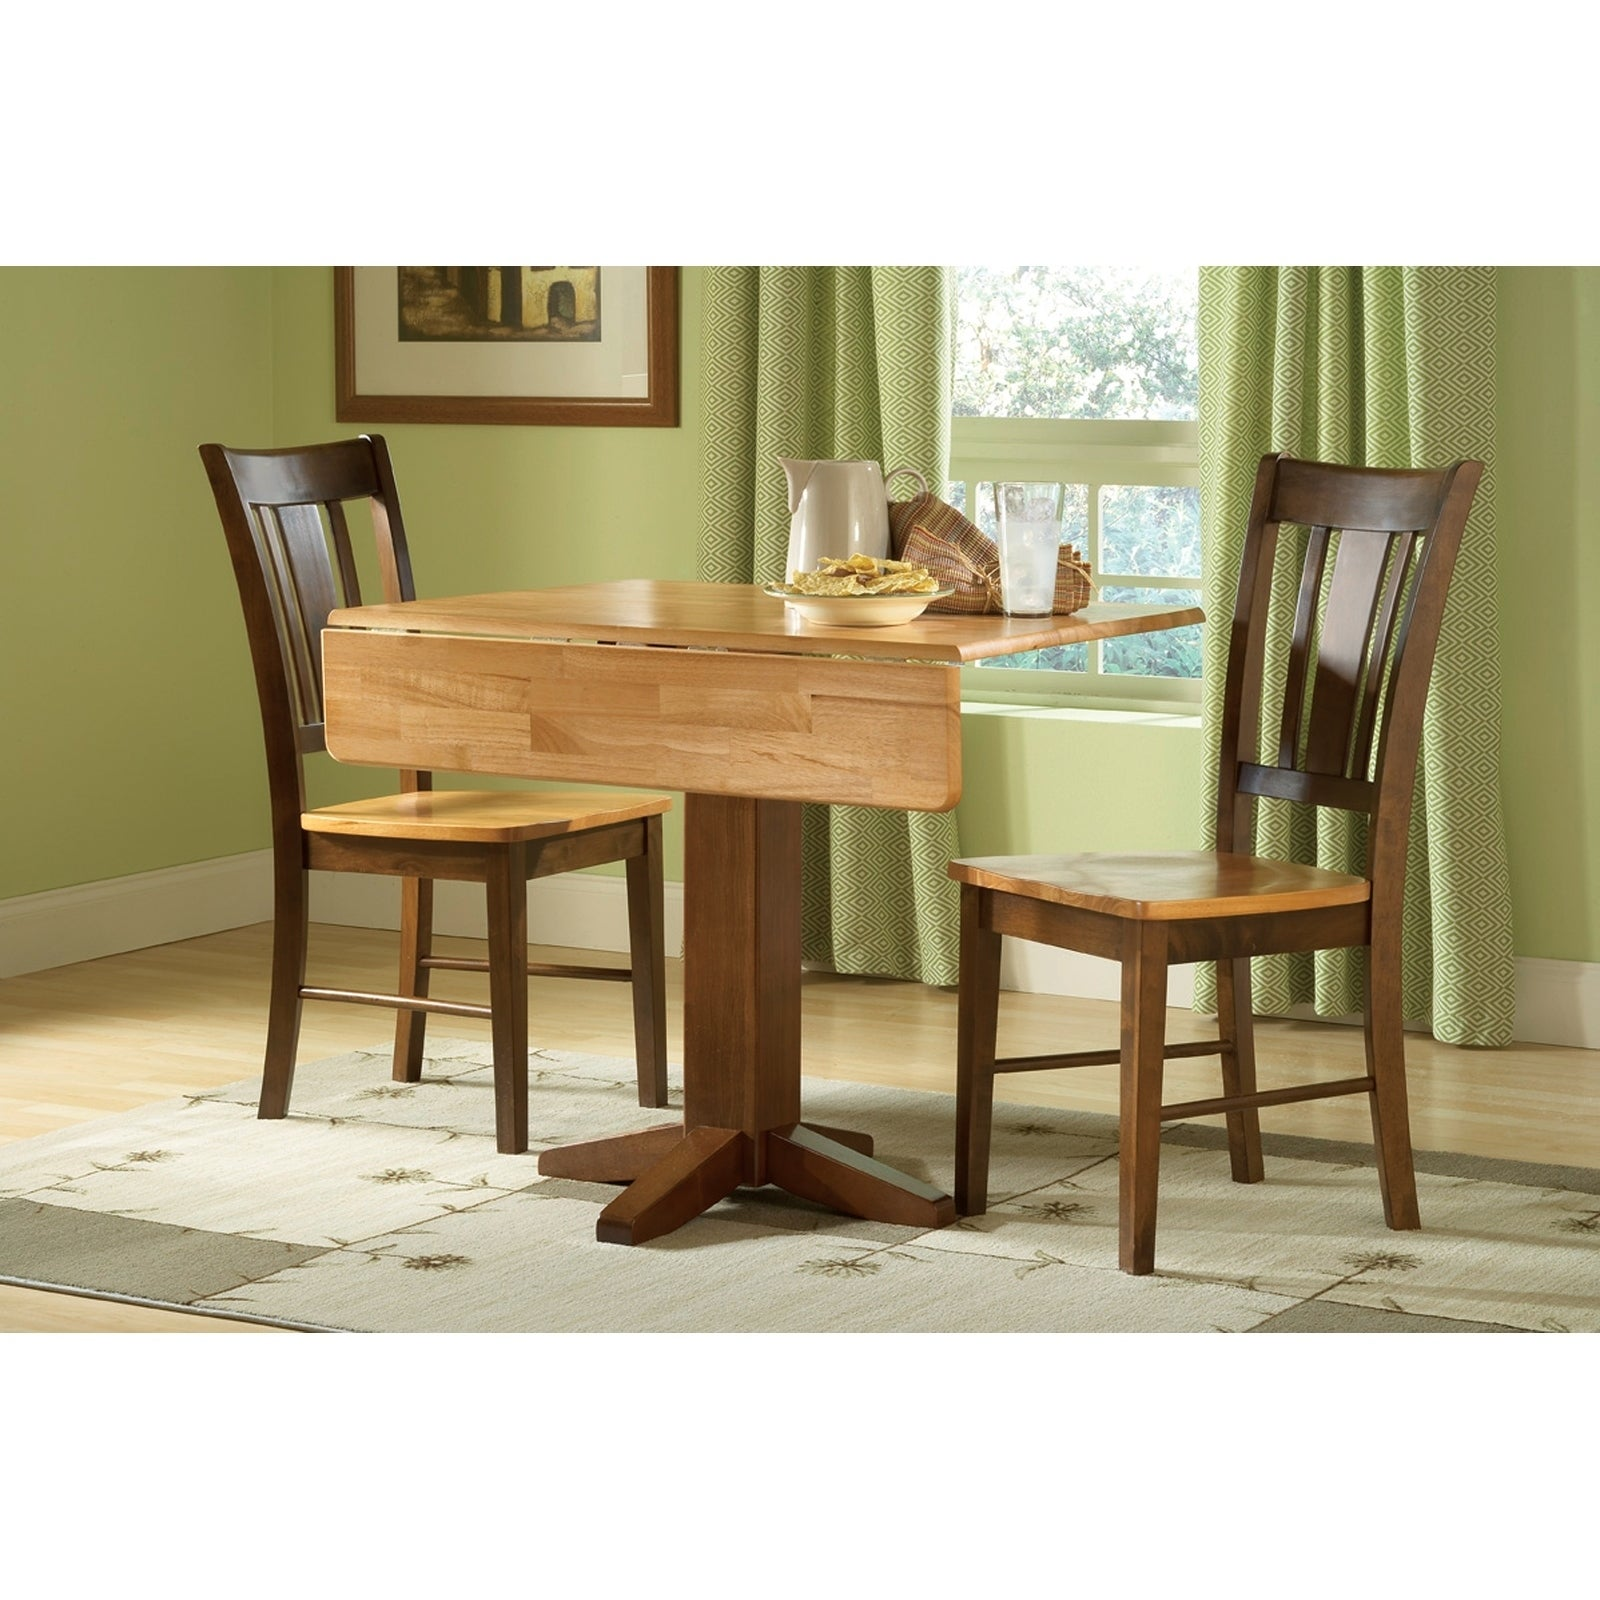 Square Dual Drop Leaf Table